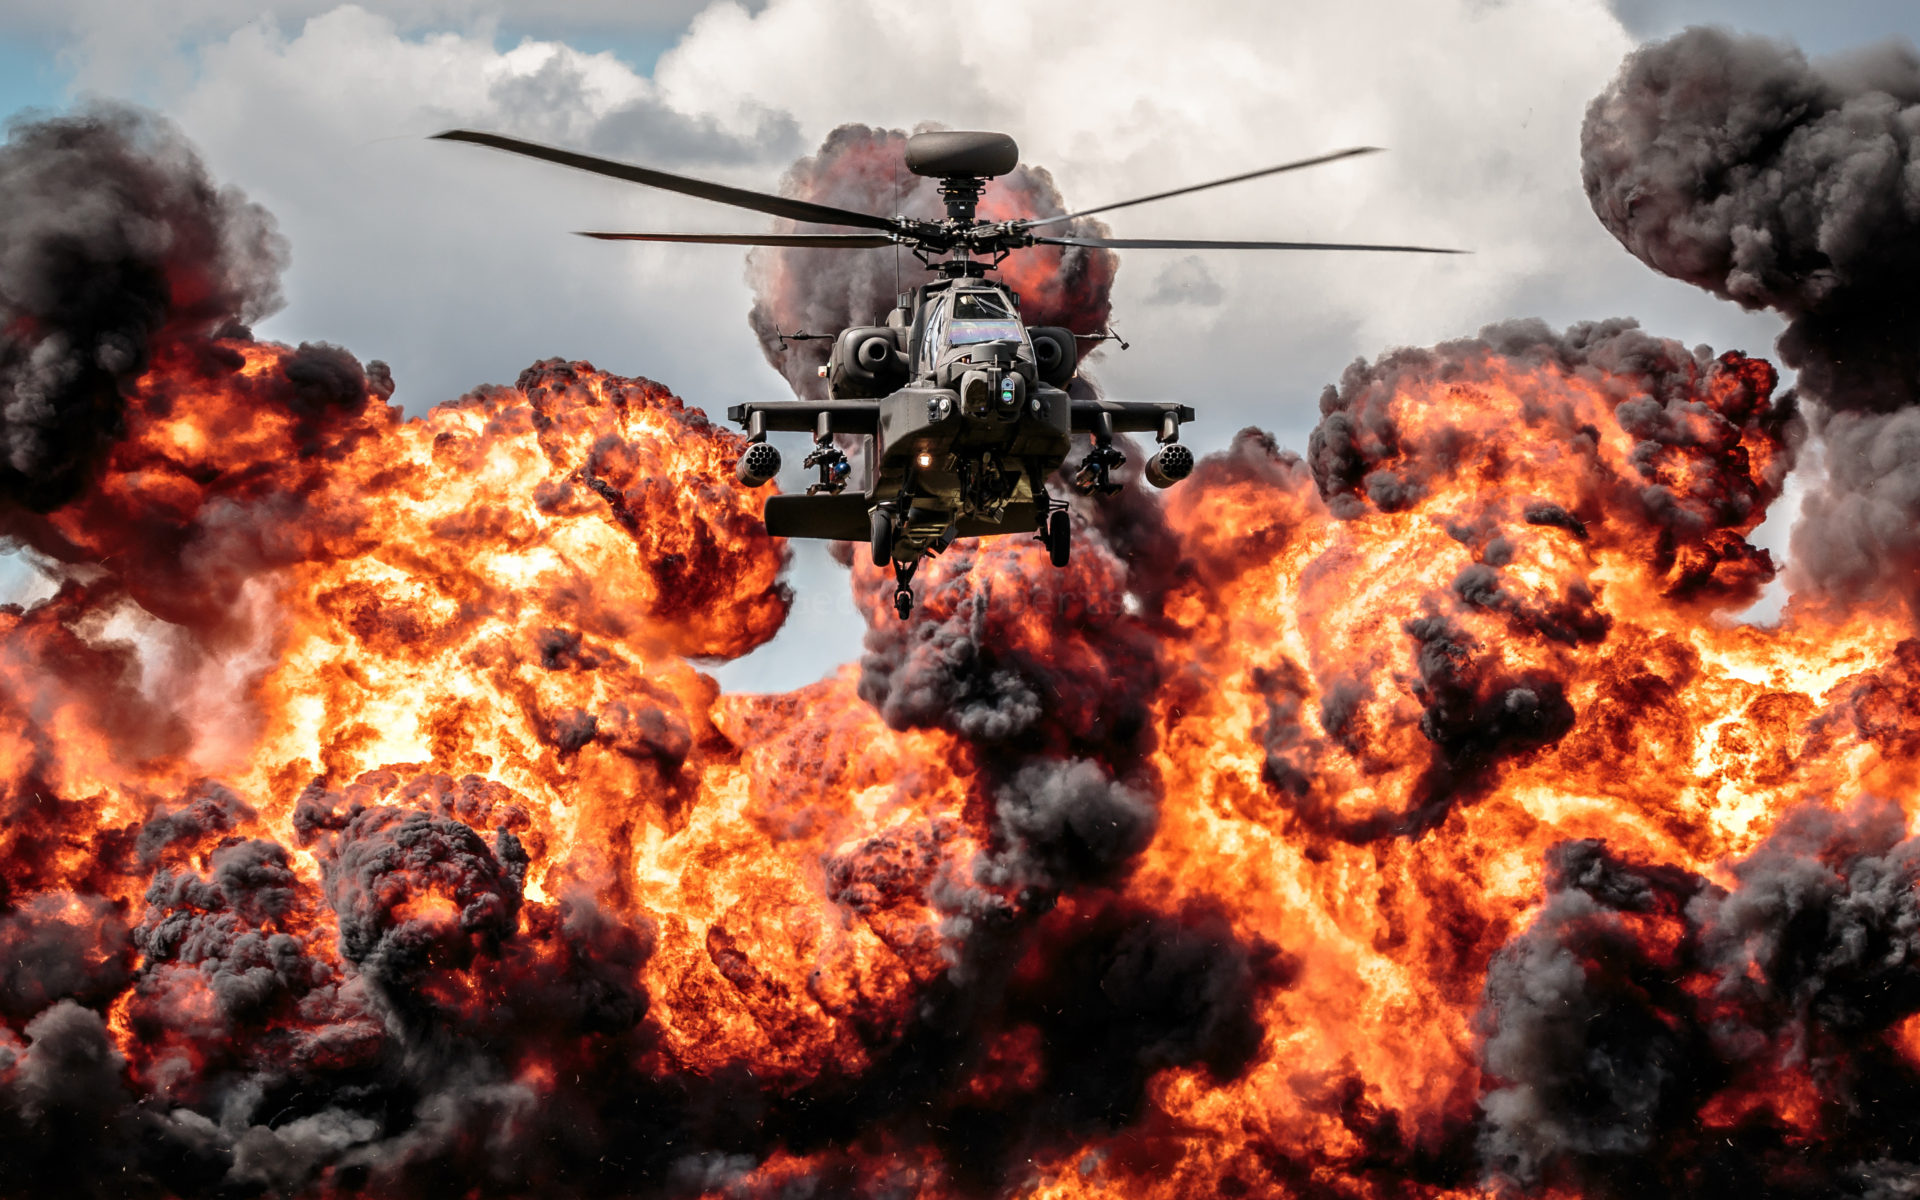 Black Hawk Helicopter Wallpapers Hd Helicopter Apache Explosion Fire Hd Desktop Wallpaper